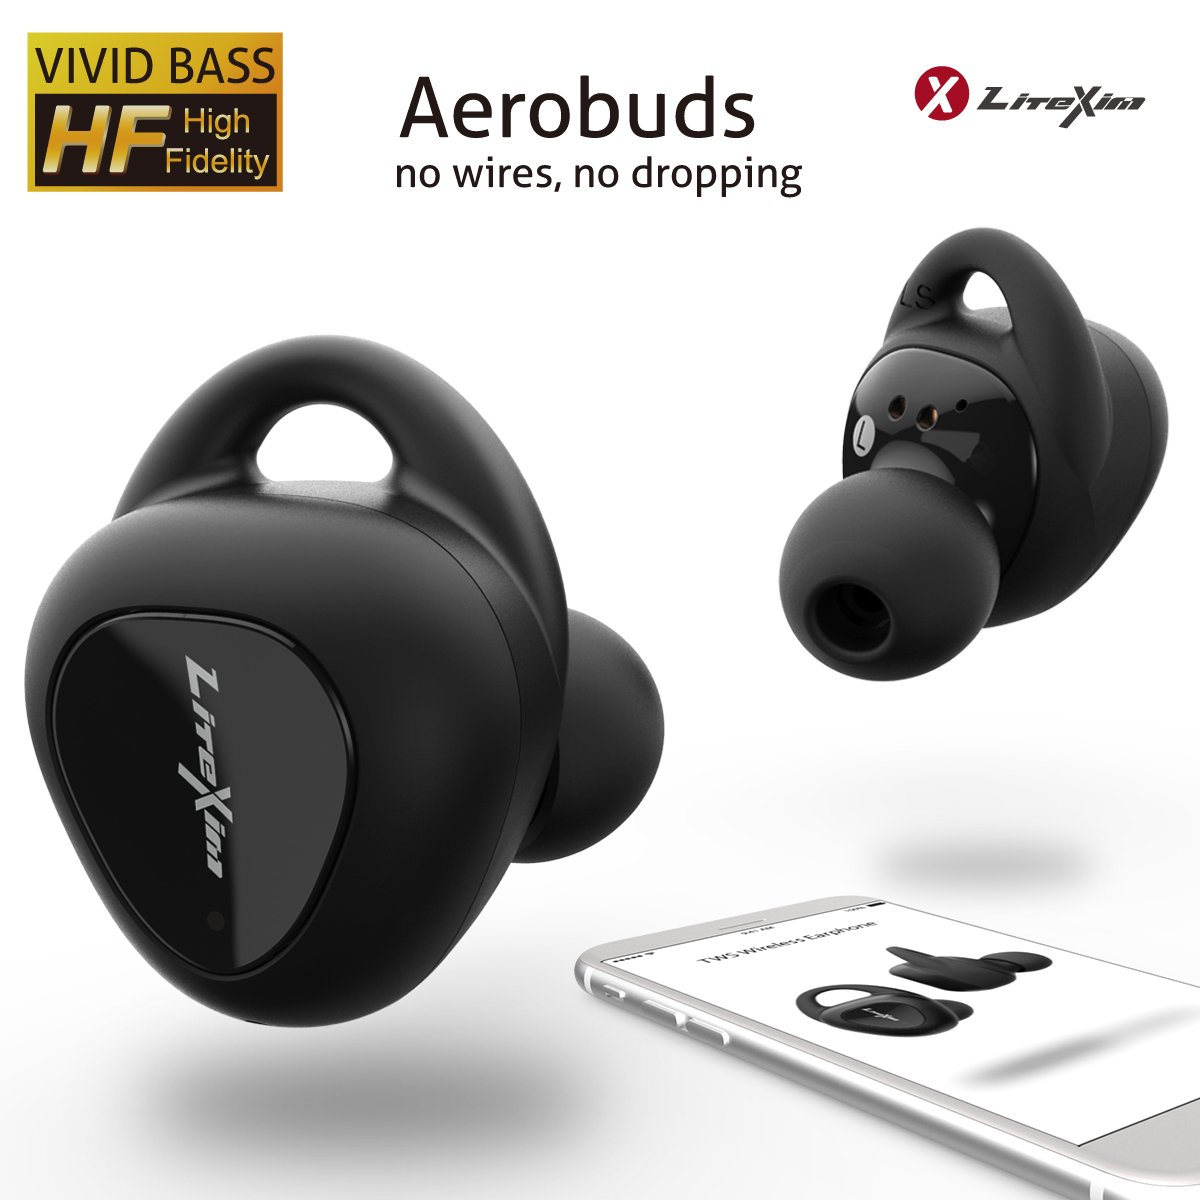 Wireless Earbuds LiteXim Aerobuds True Wireless Earbuds Bluetooth Earbuds Noise Cancelling Headphones Wireless Bluetooth Headphones In Ear Headphones Truly Wireless Earbuds Bass 3D Stereo 16H Playtime